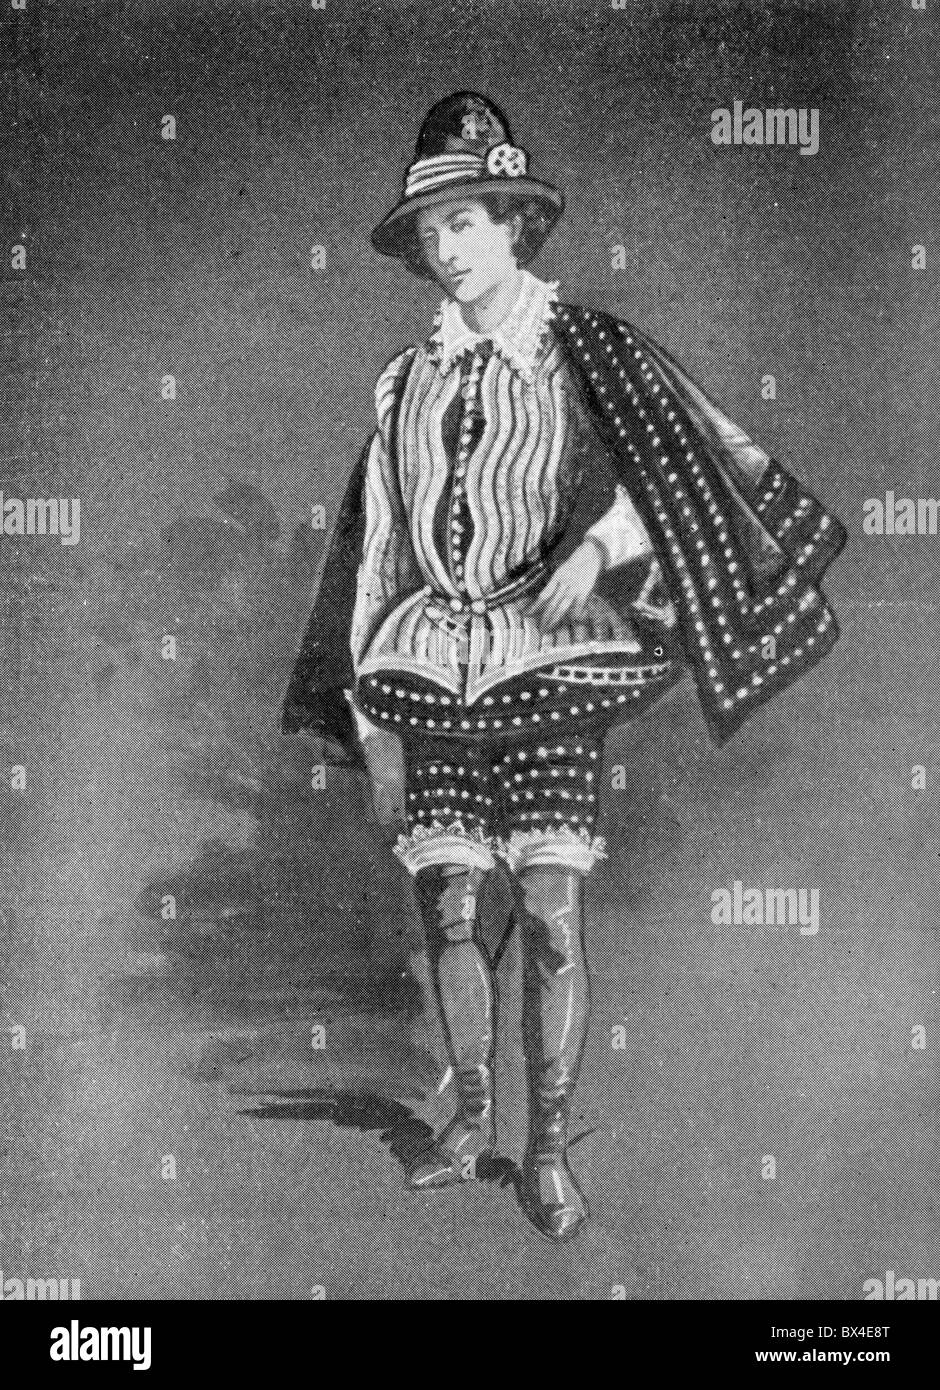 Costumes worn in England during Shakespeare's time; Sir Philip Sidney; Black and White Illustration; - Stock Image